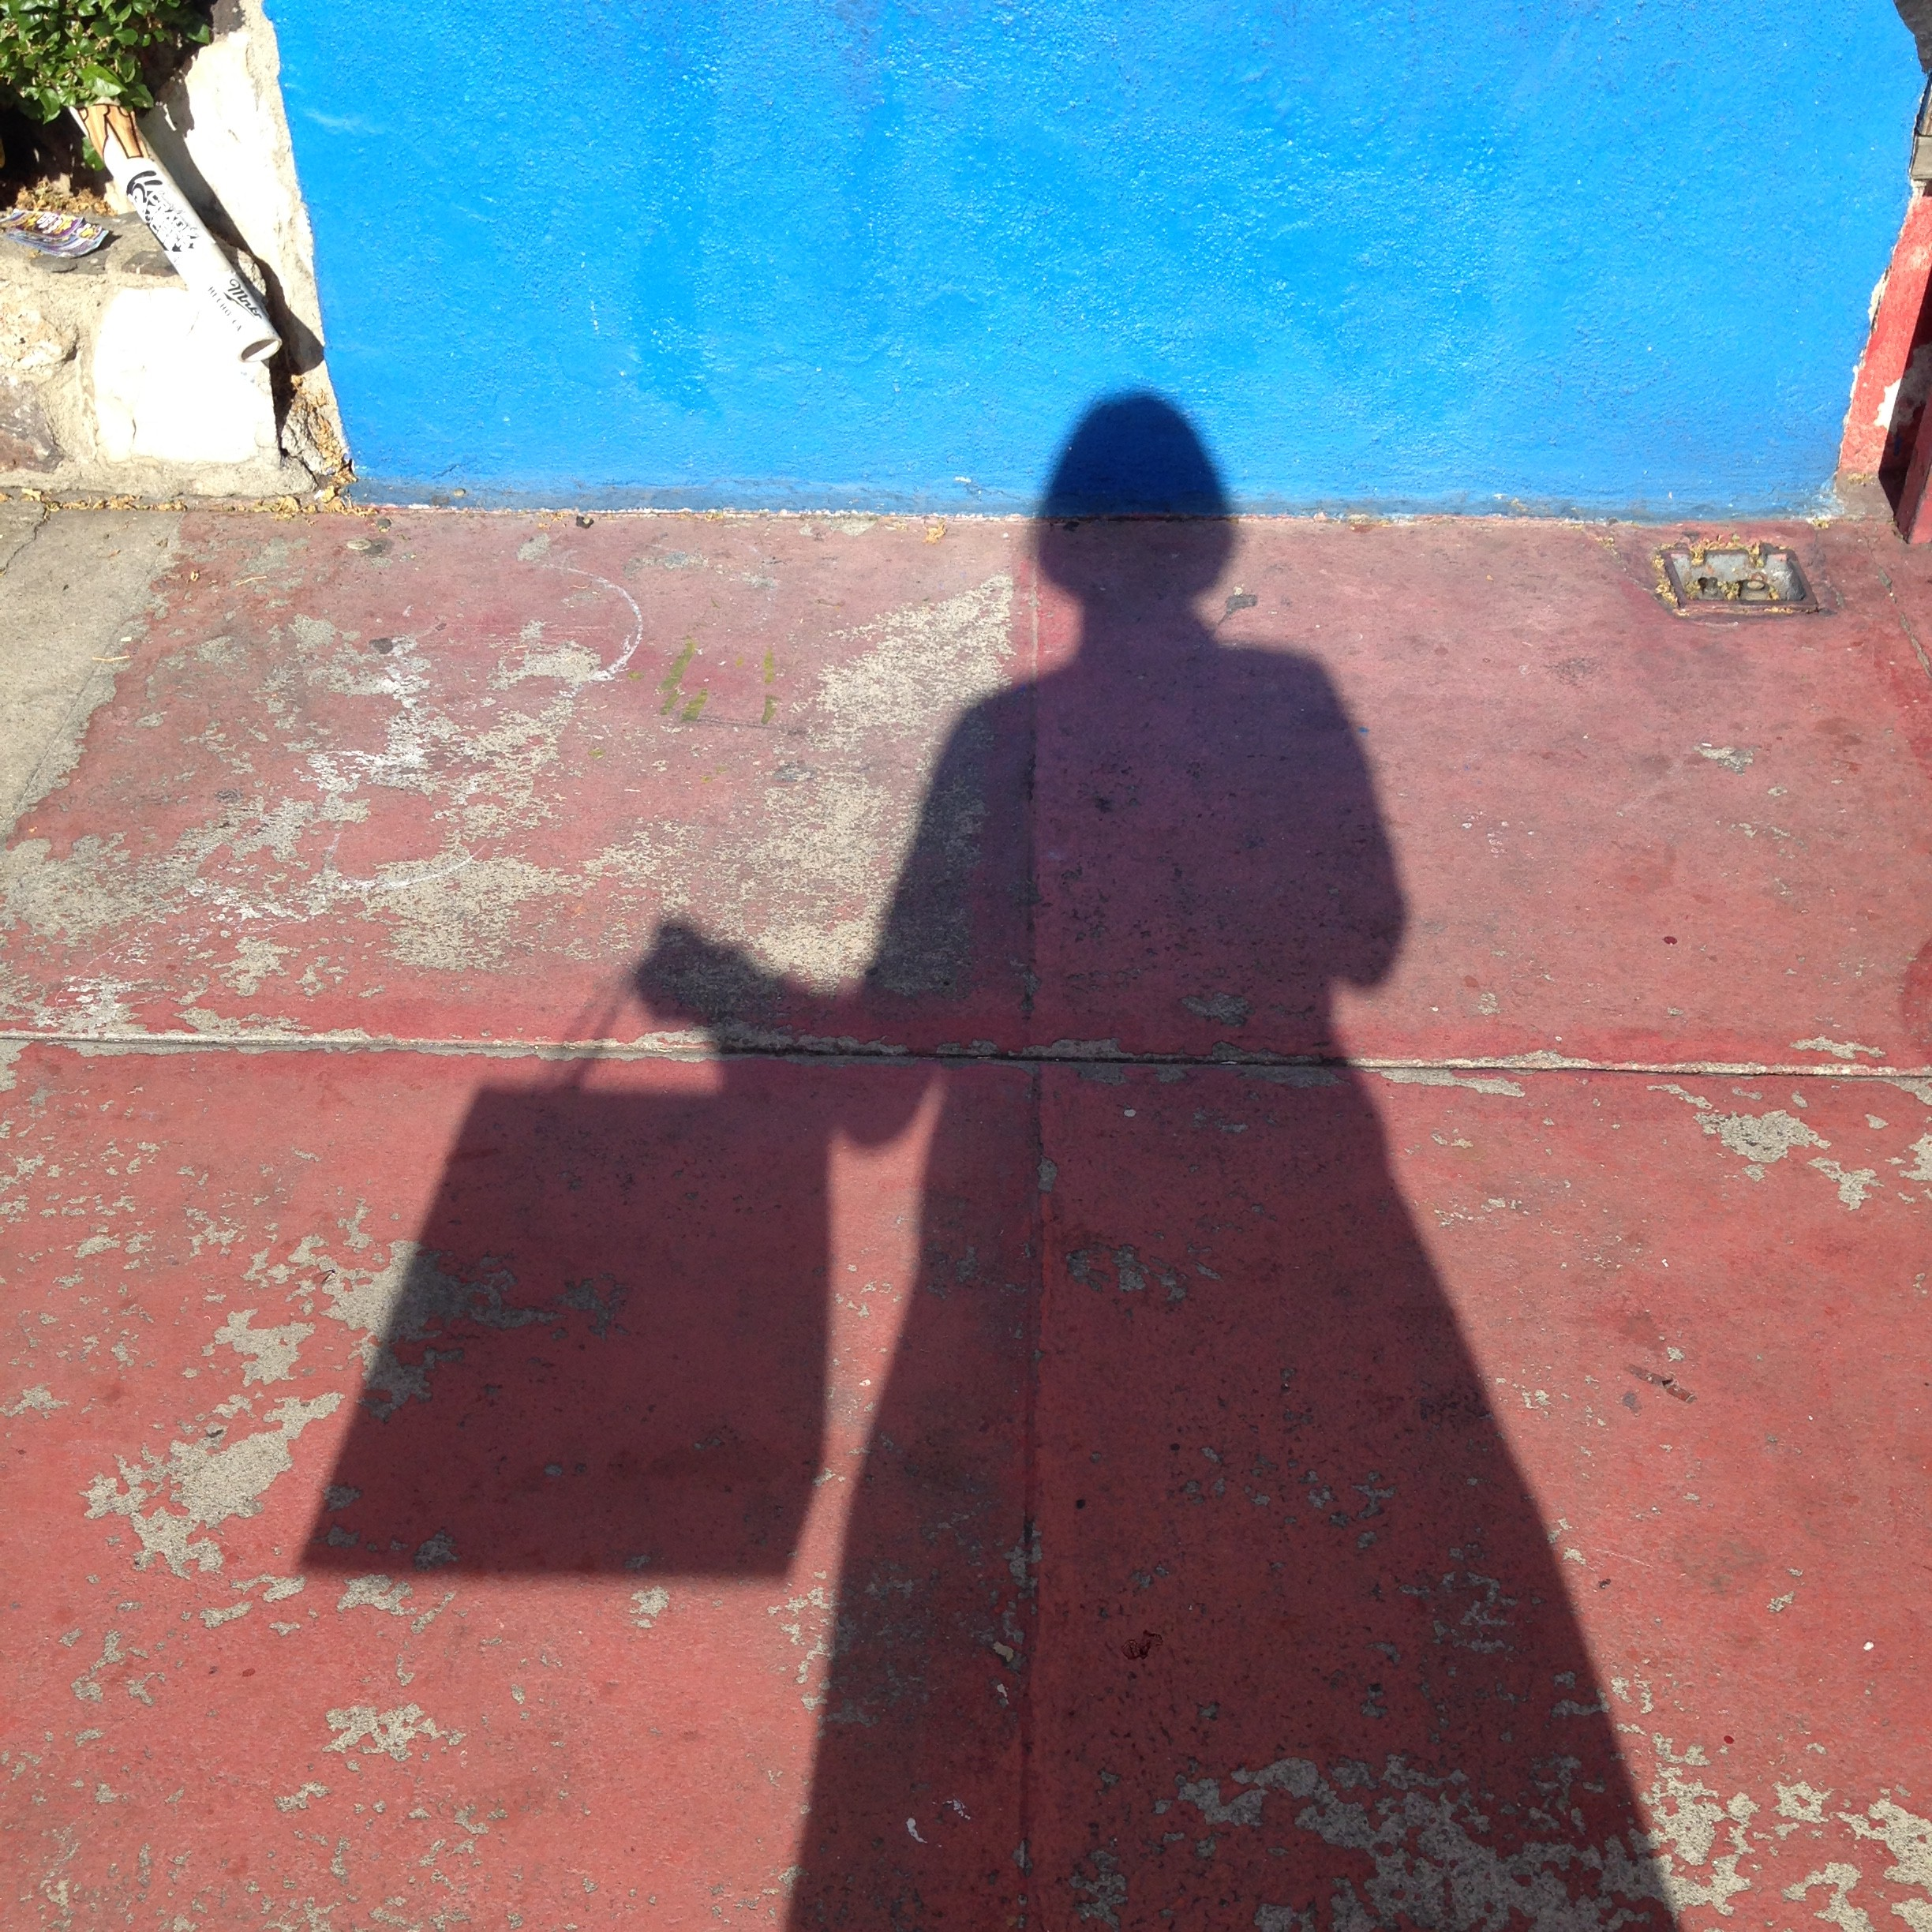 This is the shadow of me and my bag.